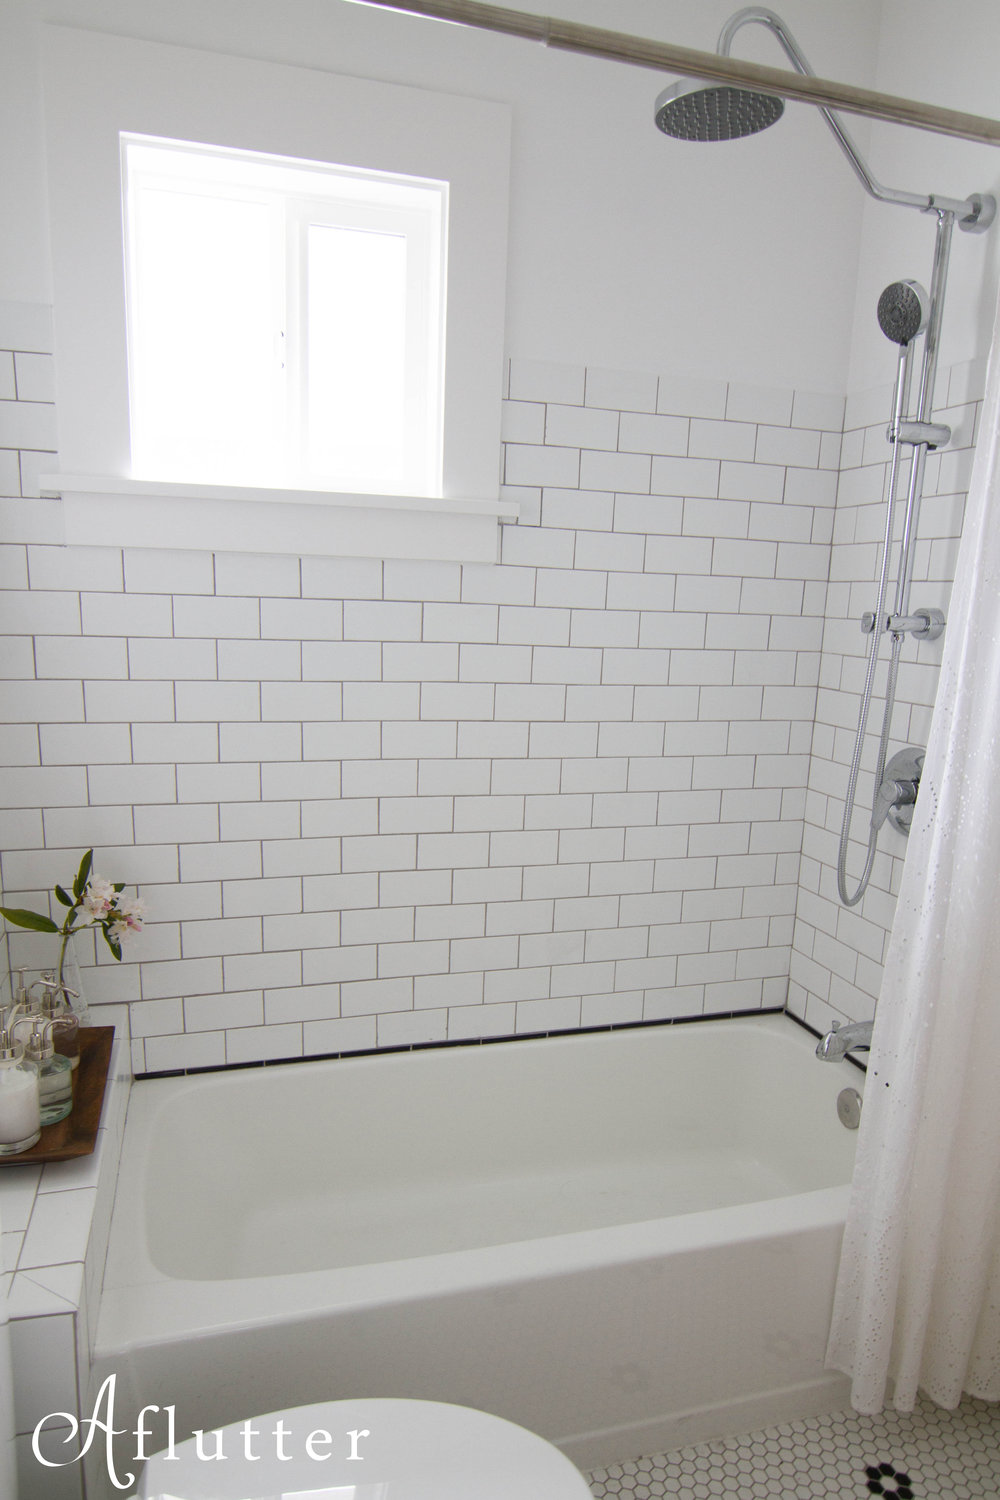 Bath-Remodel-6-of-11.jpg